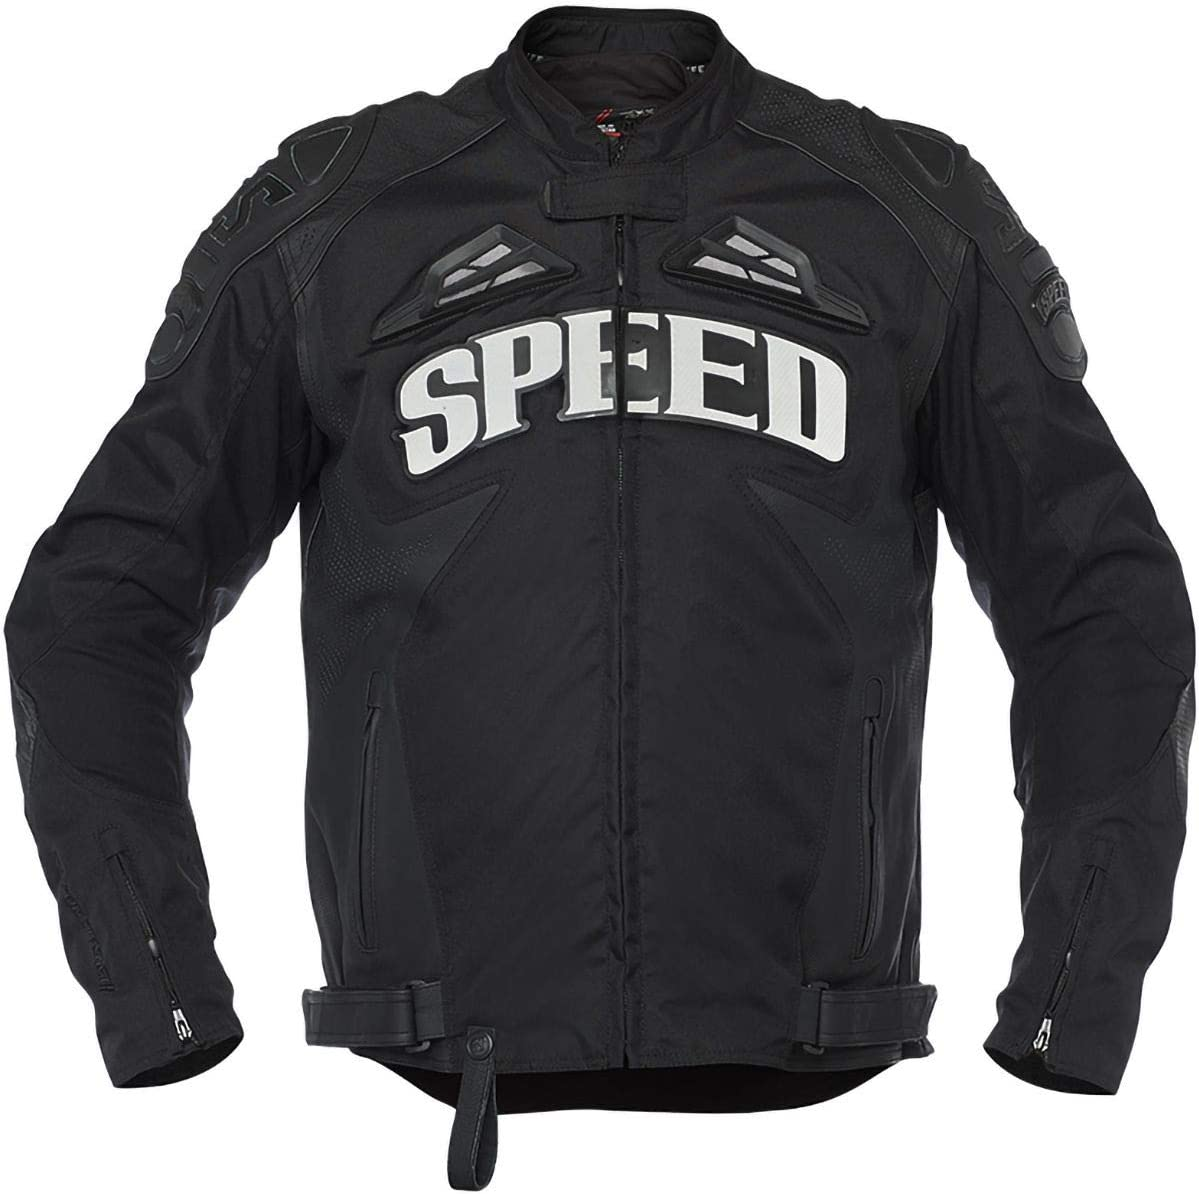 Speed Strength Insurgent 最新アイテム 即納 Small Jacket Black